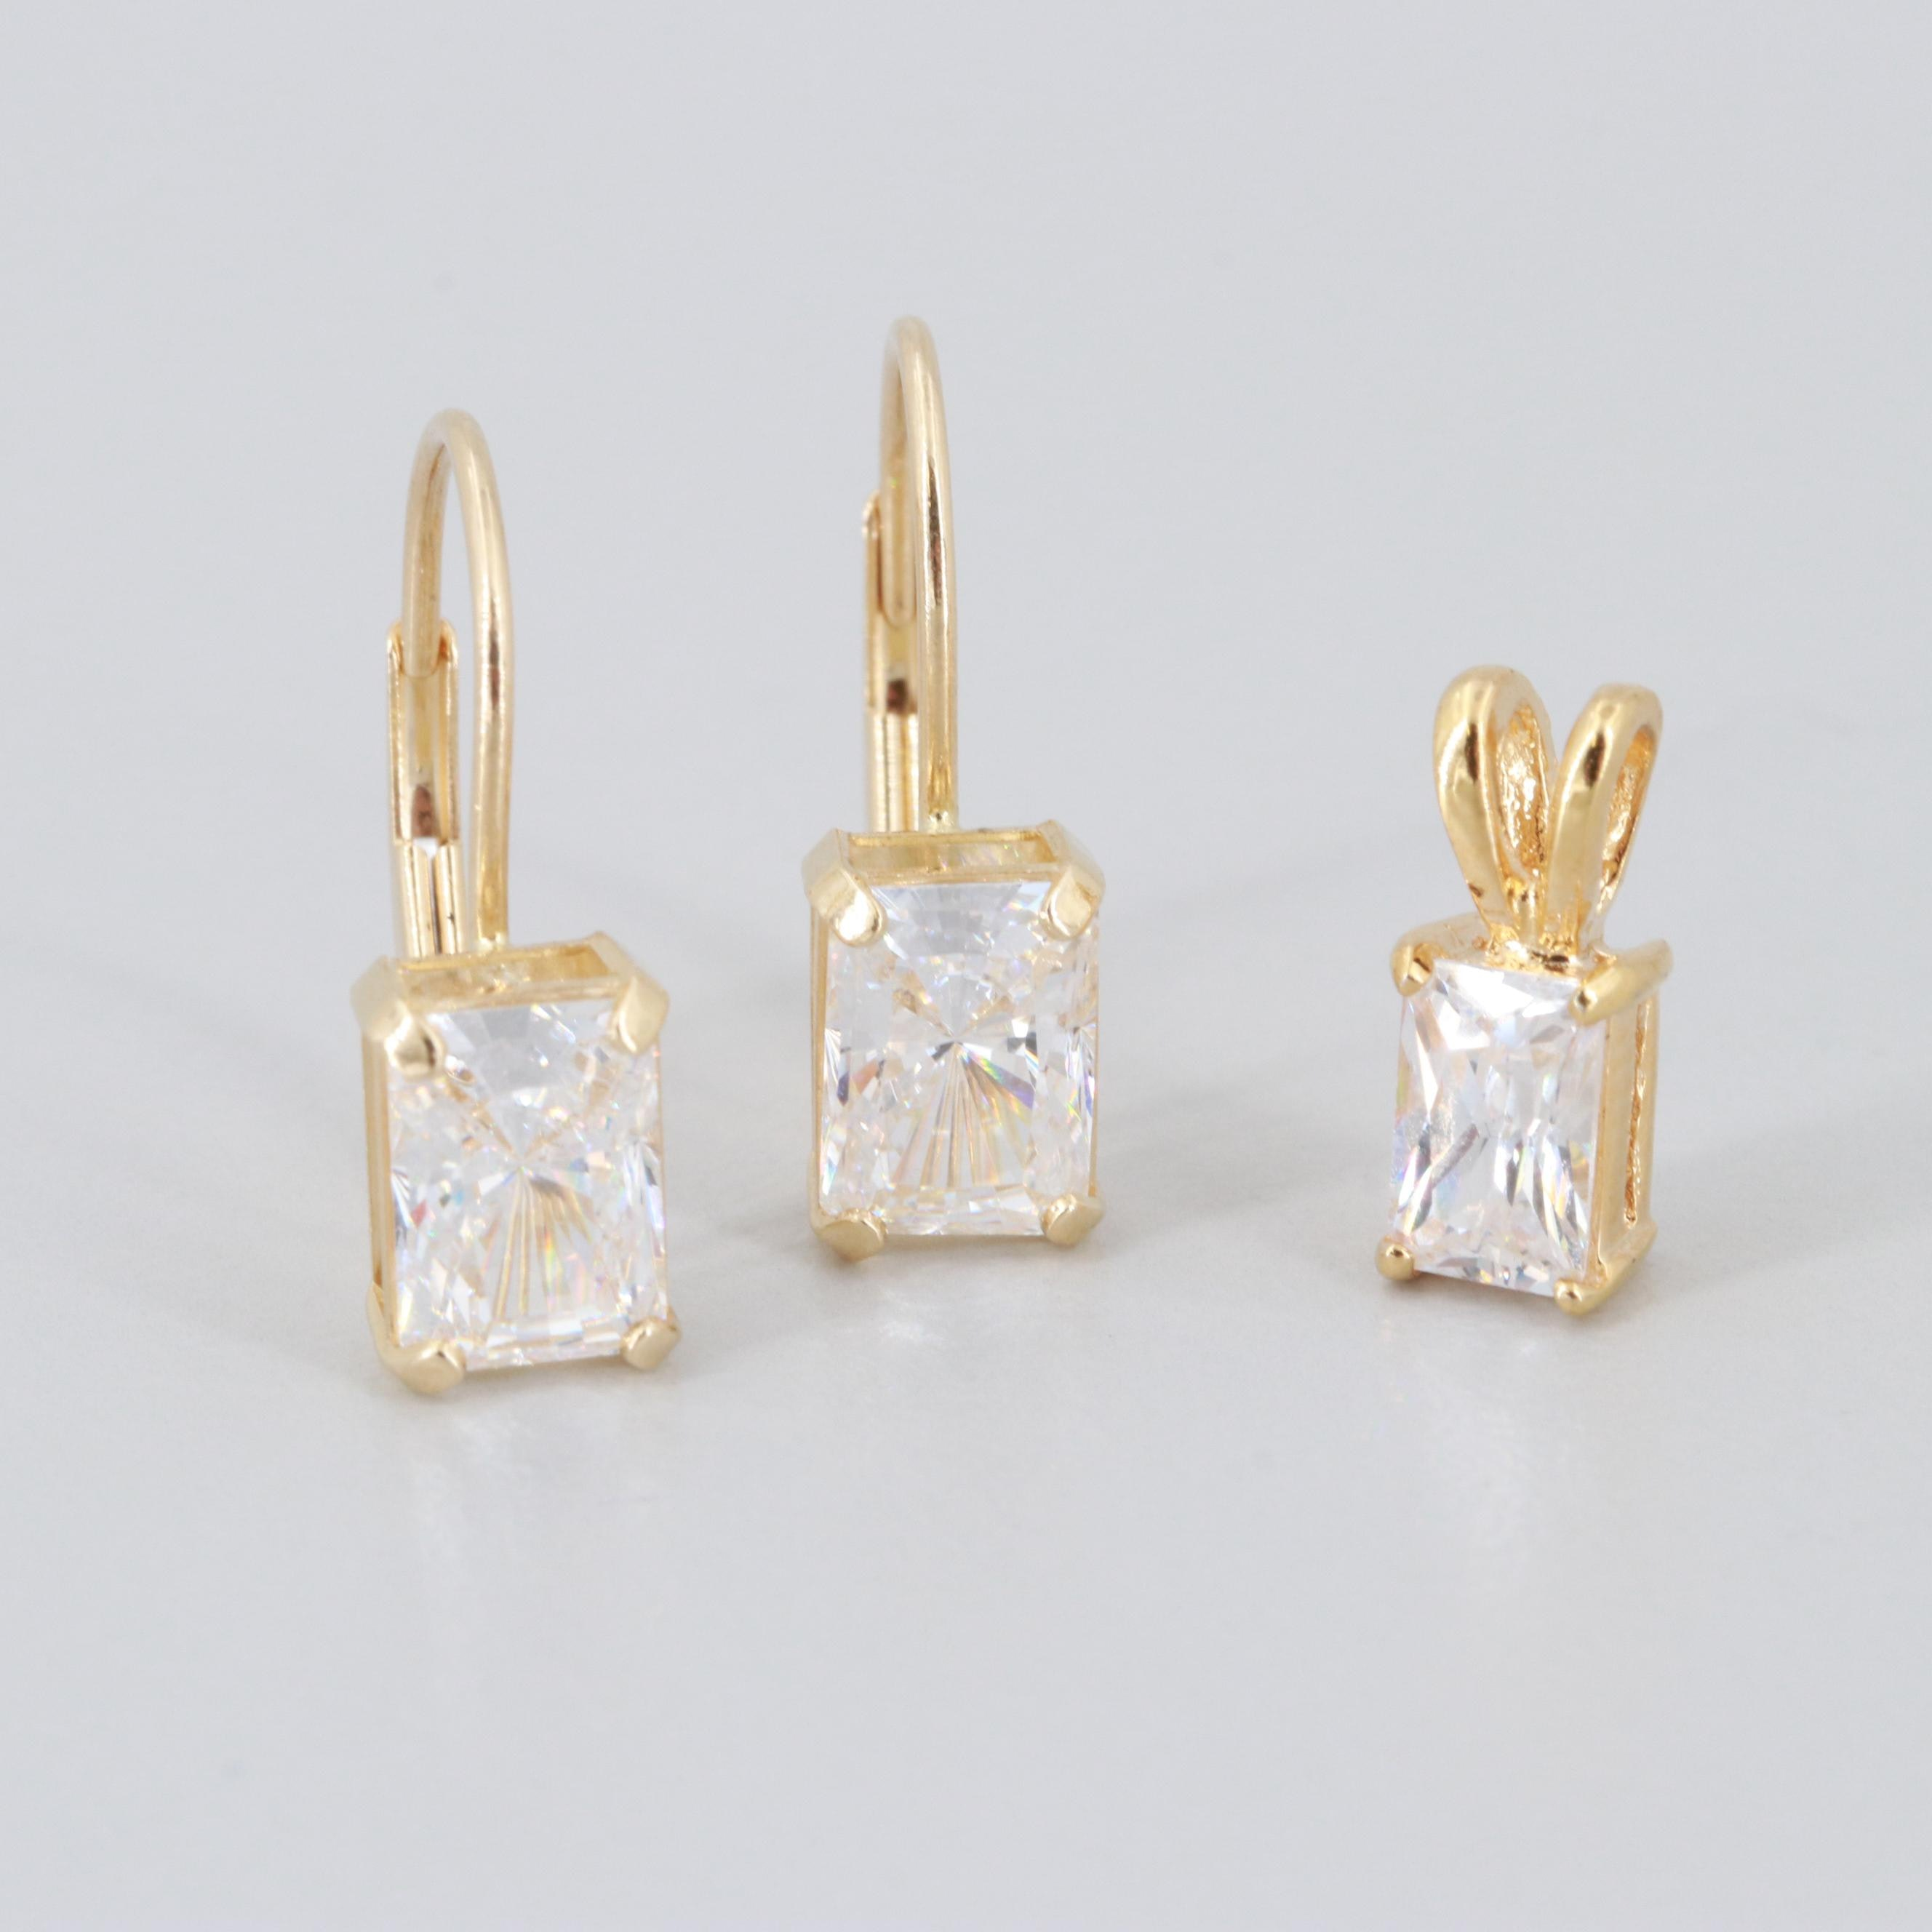 14K Yellow Gold Cubic Zirconia Earrings and Gold Tone Cubic Zirconia Pendant